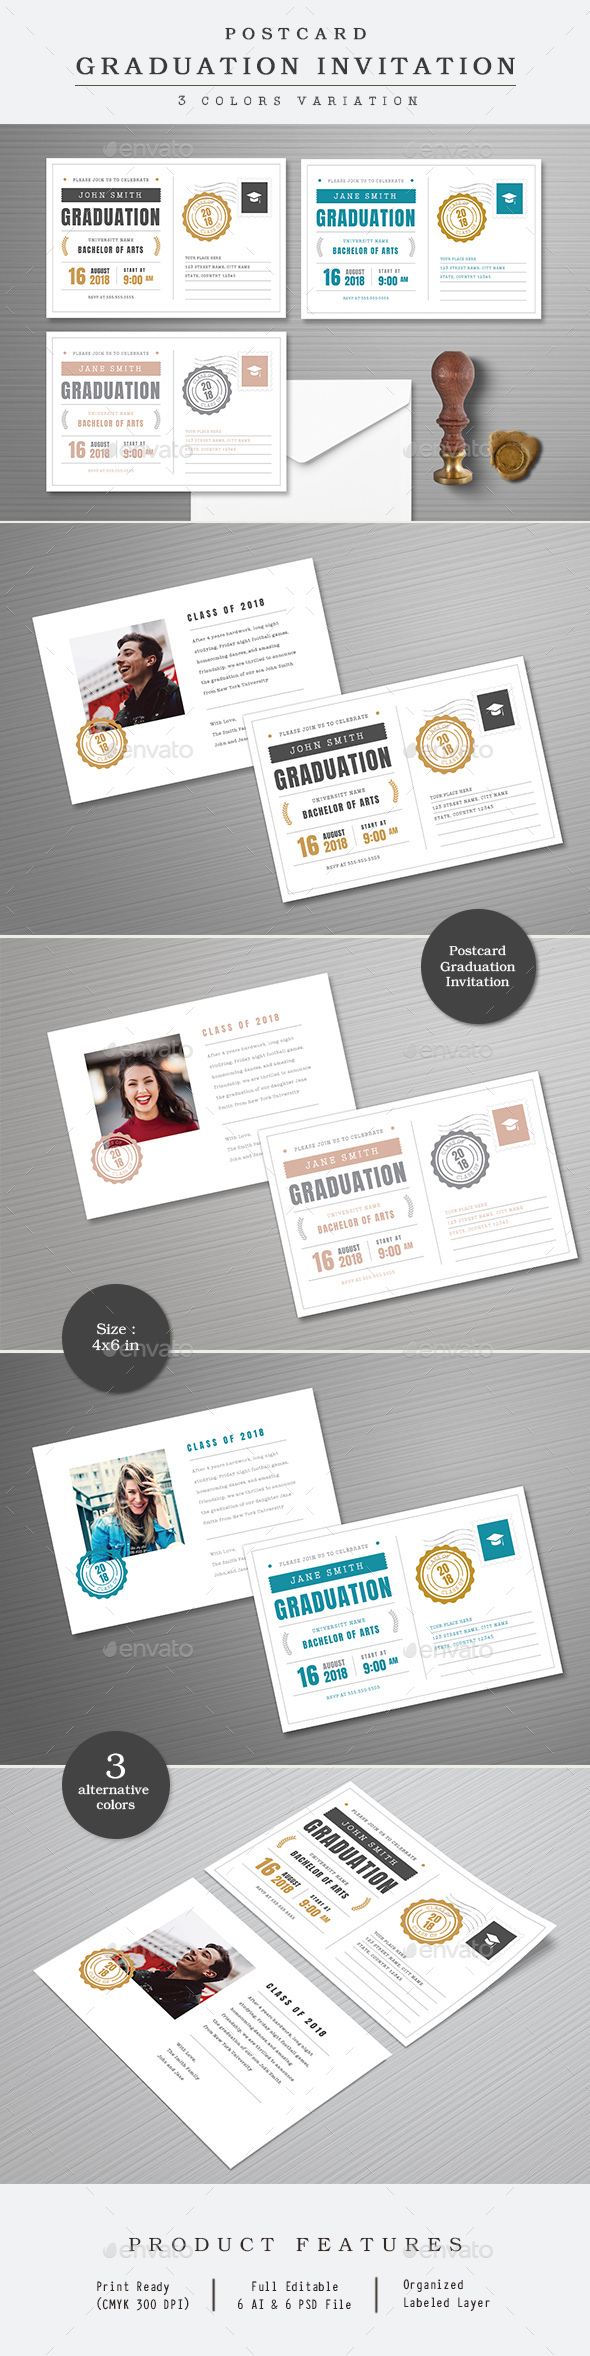 Postcard Graduation Invitation - Invitations Cards & Invites